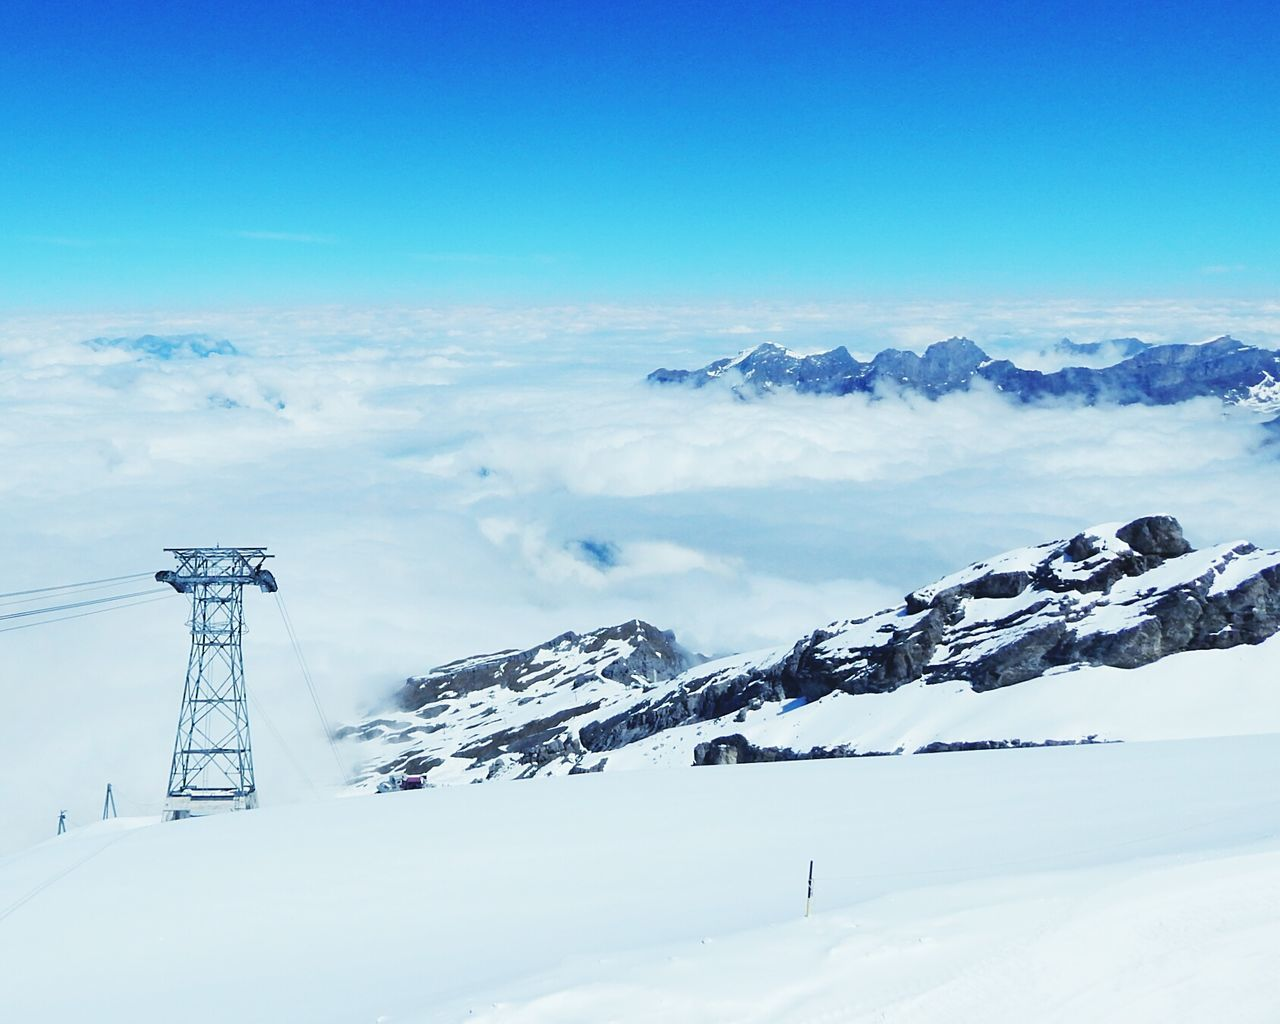 Minimalistic Travel Blue No People Sky Snow Day Landscape Scenics Nature Mountain Peak Swiss Alps Switzerland Cold Temperature Low Angle View Cloud - Sky Clouds Cloudscape